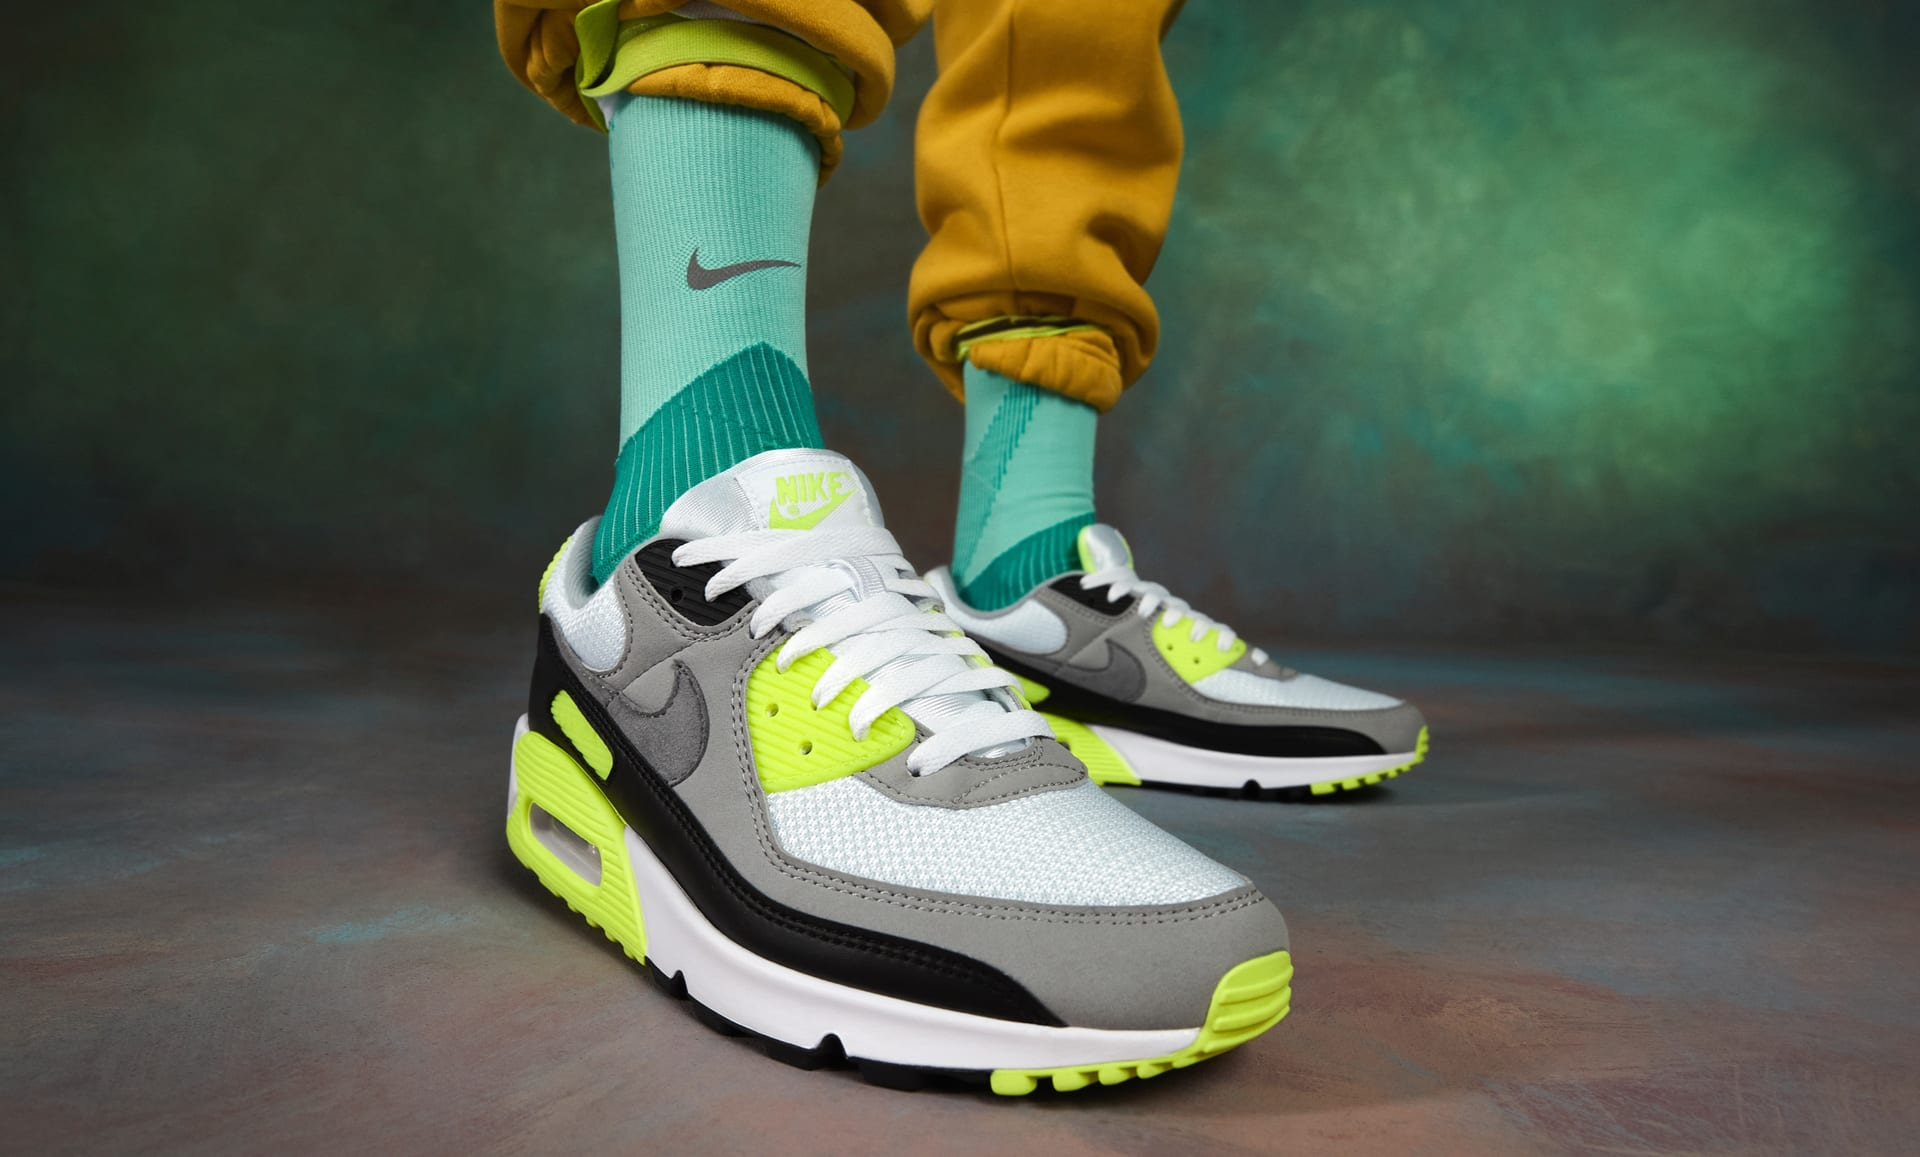 Nike Air Max 90 Black White Medium Grey Volt + How to Lace your Sneakers